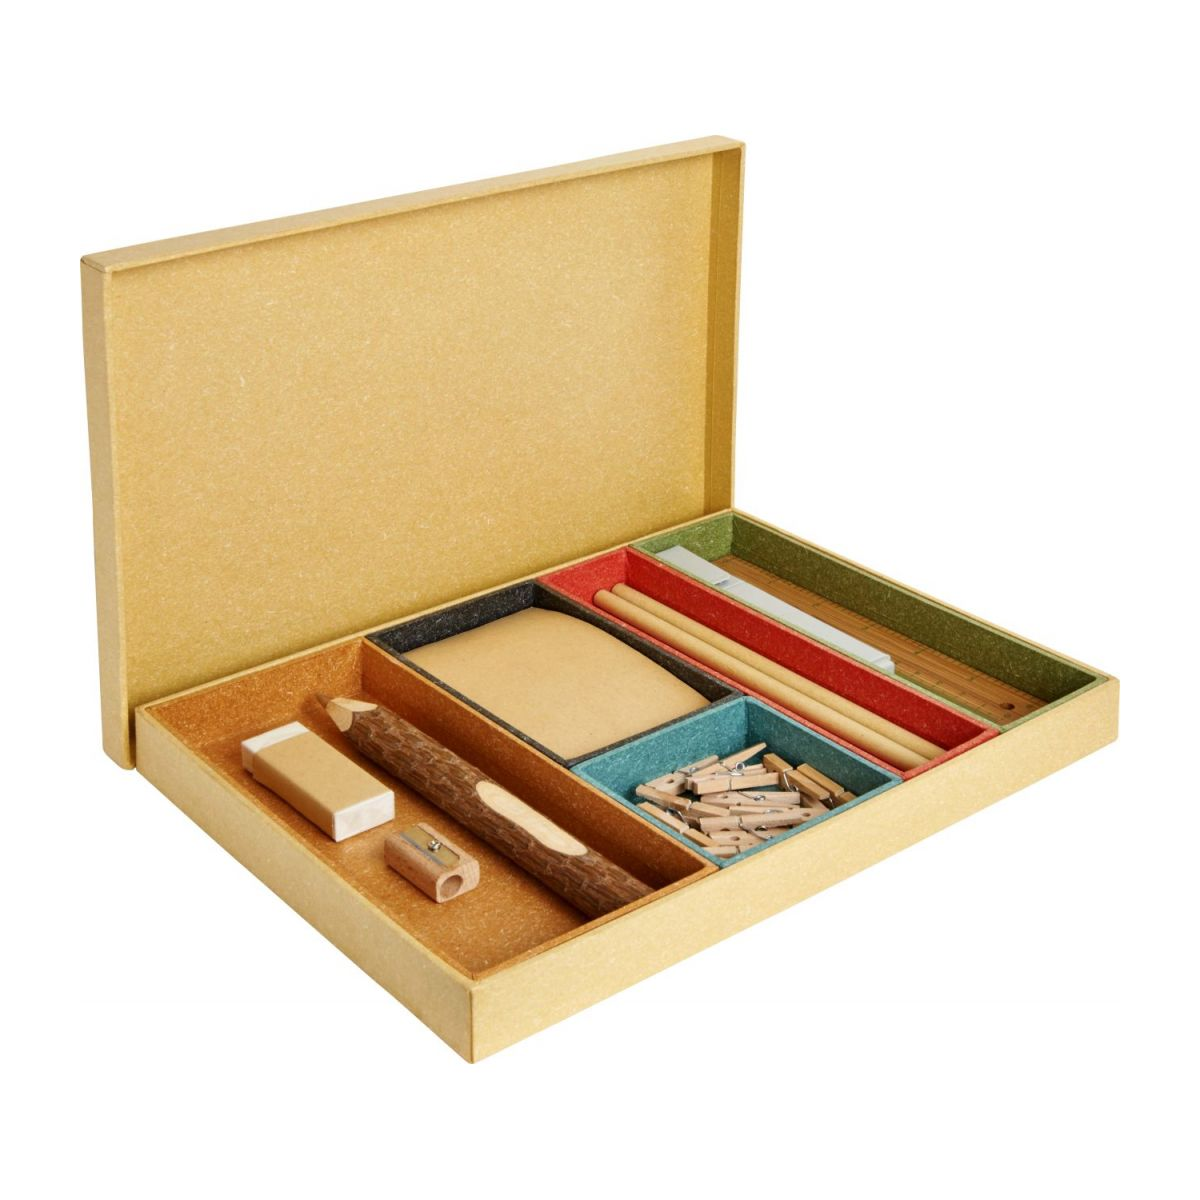 Stationery box (10 pieces) n°1